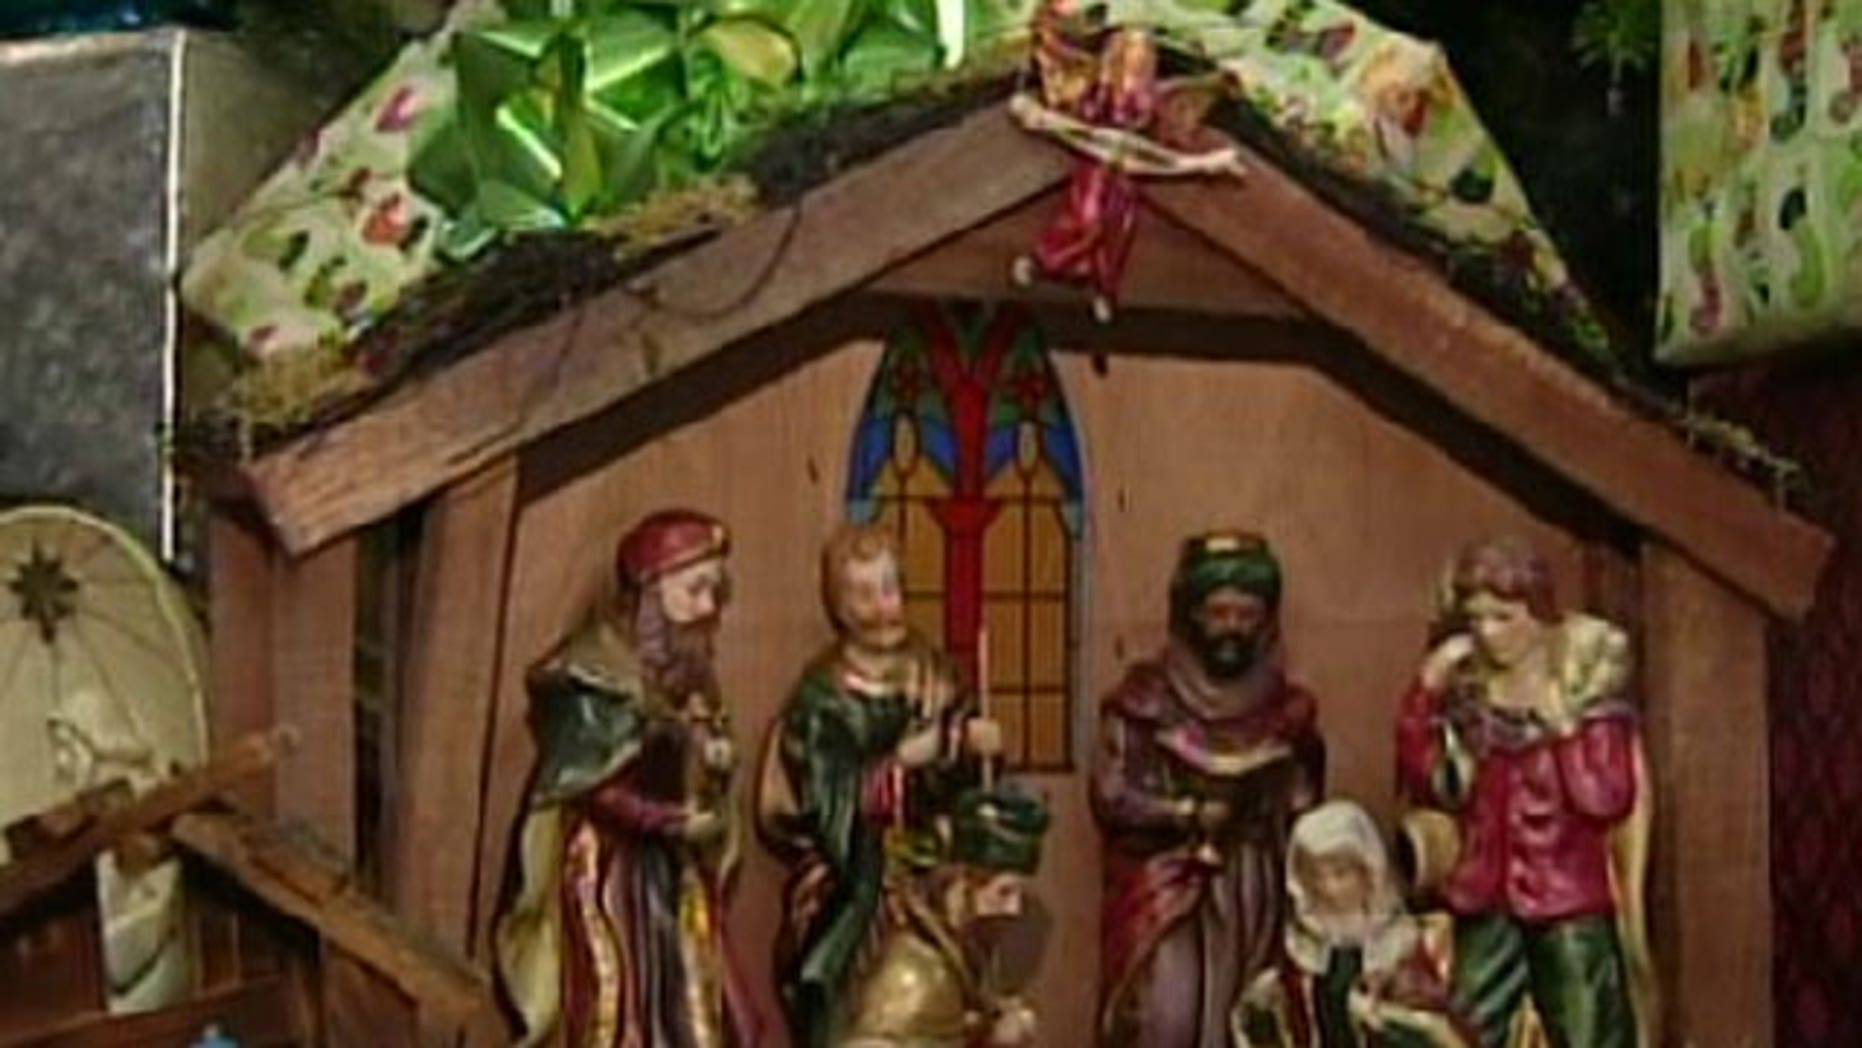 A religious group is protesting what they are calling discrimination after the City of Boca Raton left a manger out of a holiday dispaly inside City Hall.